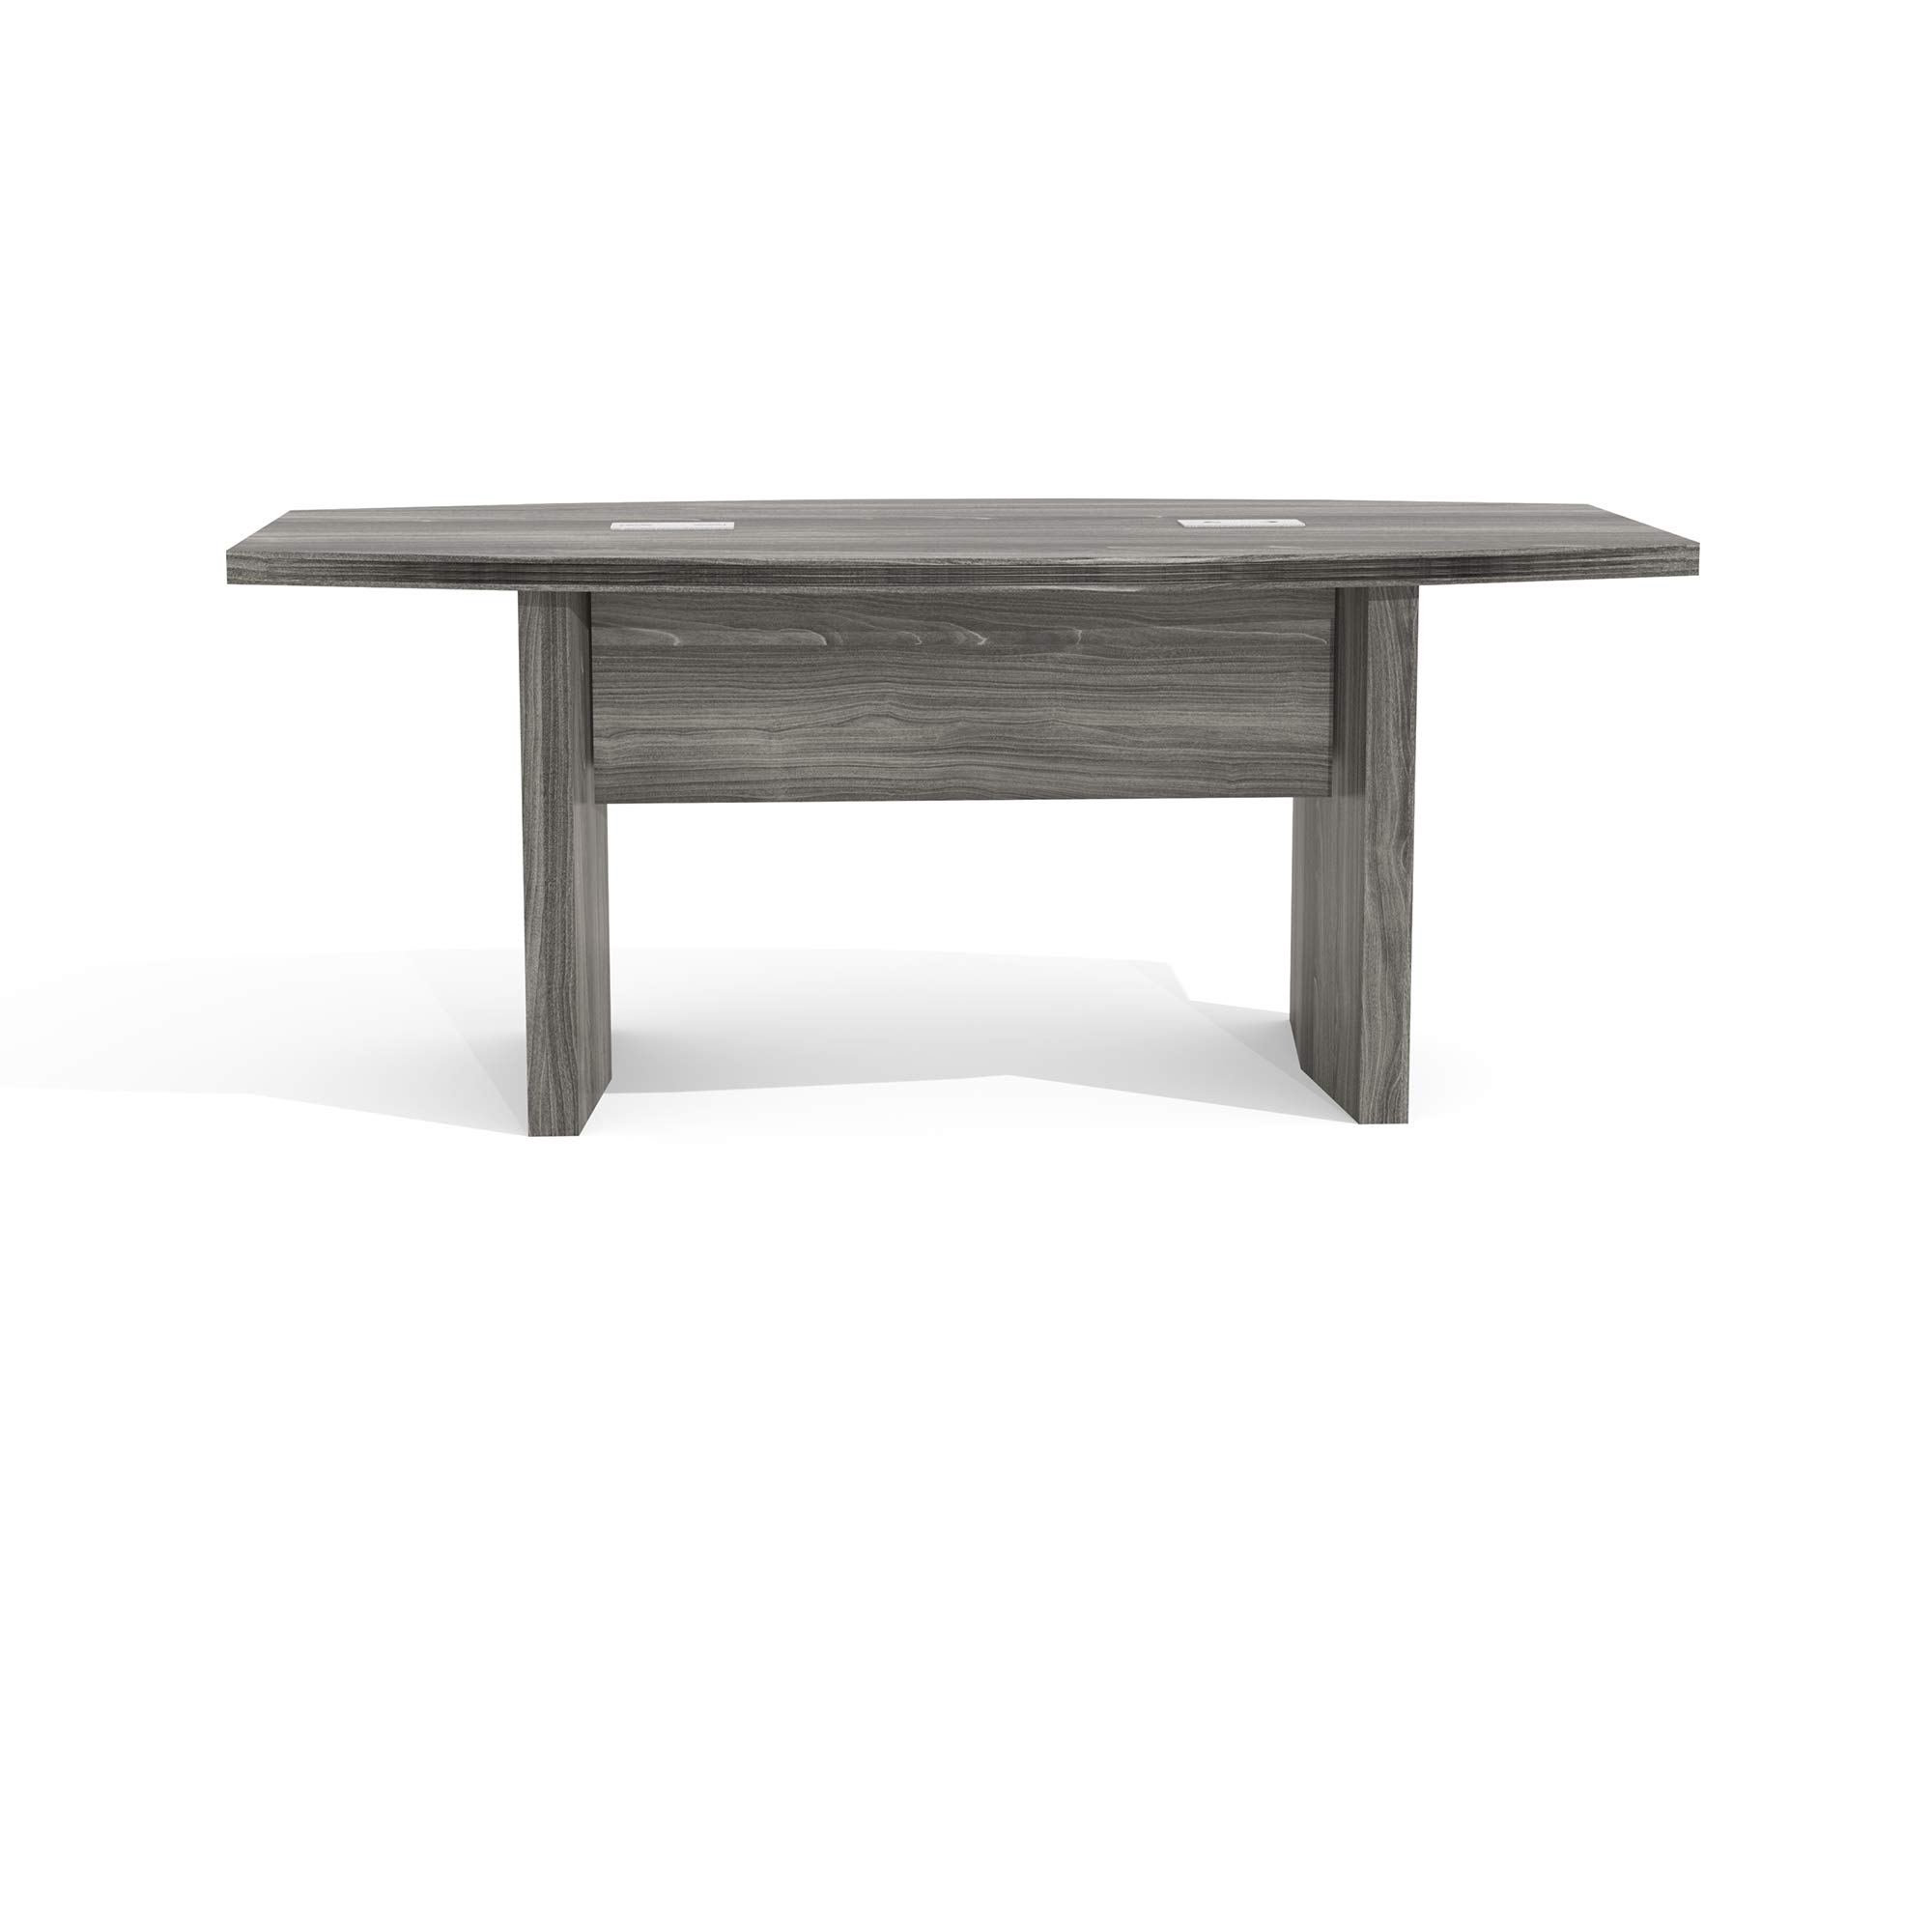 Mayline ACTB6LGS Aberdeen 6' Boat Shape Conference Table, Gray Steel Tf by Safco Products (Image #3)